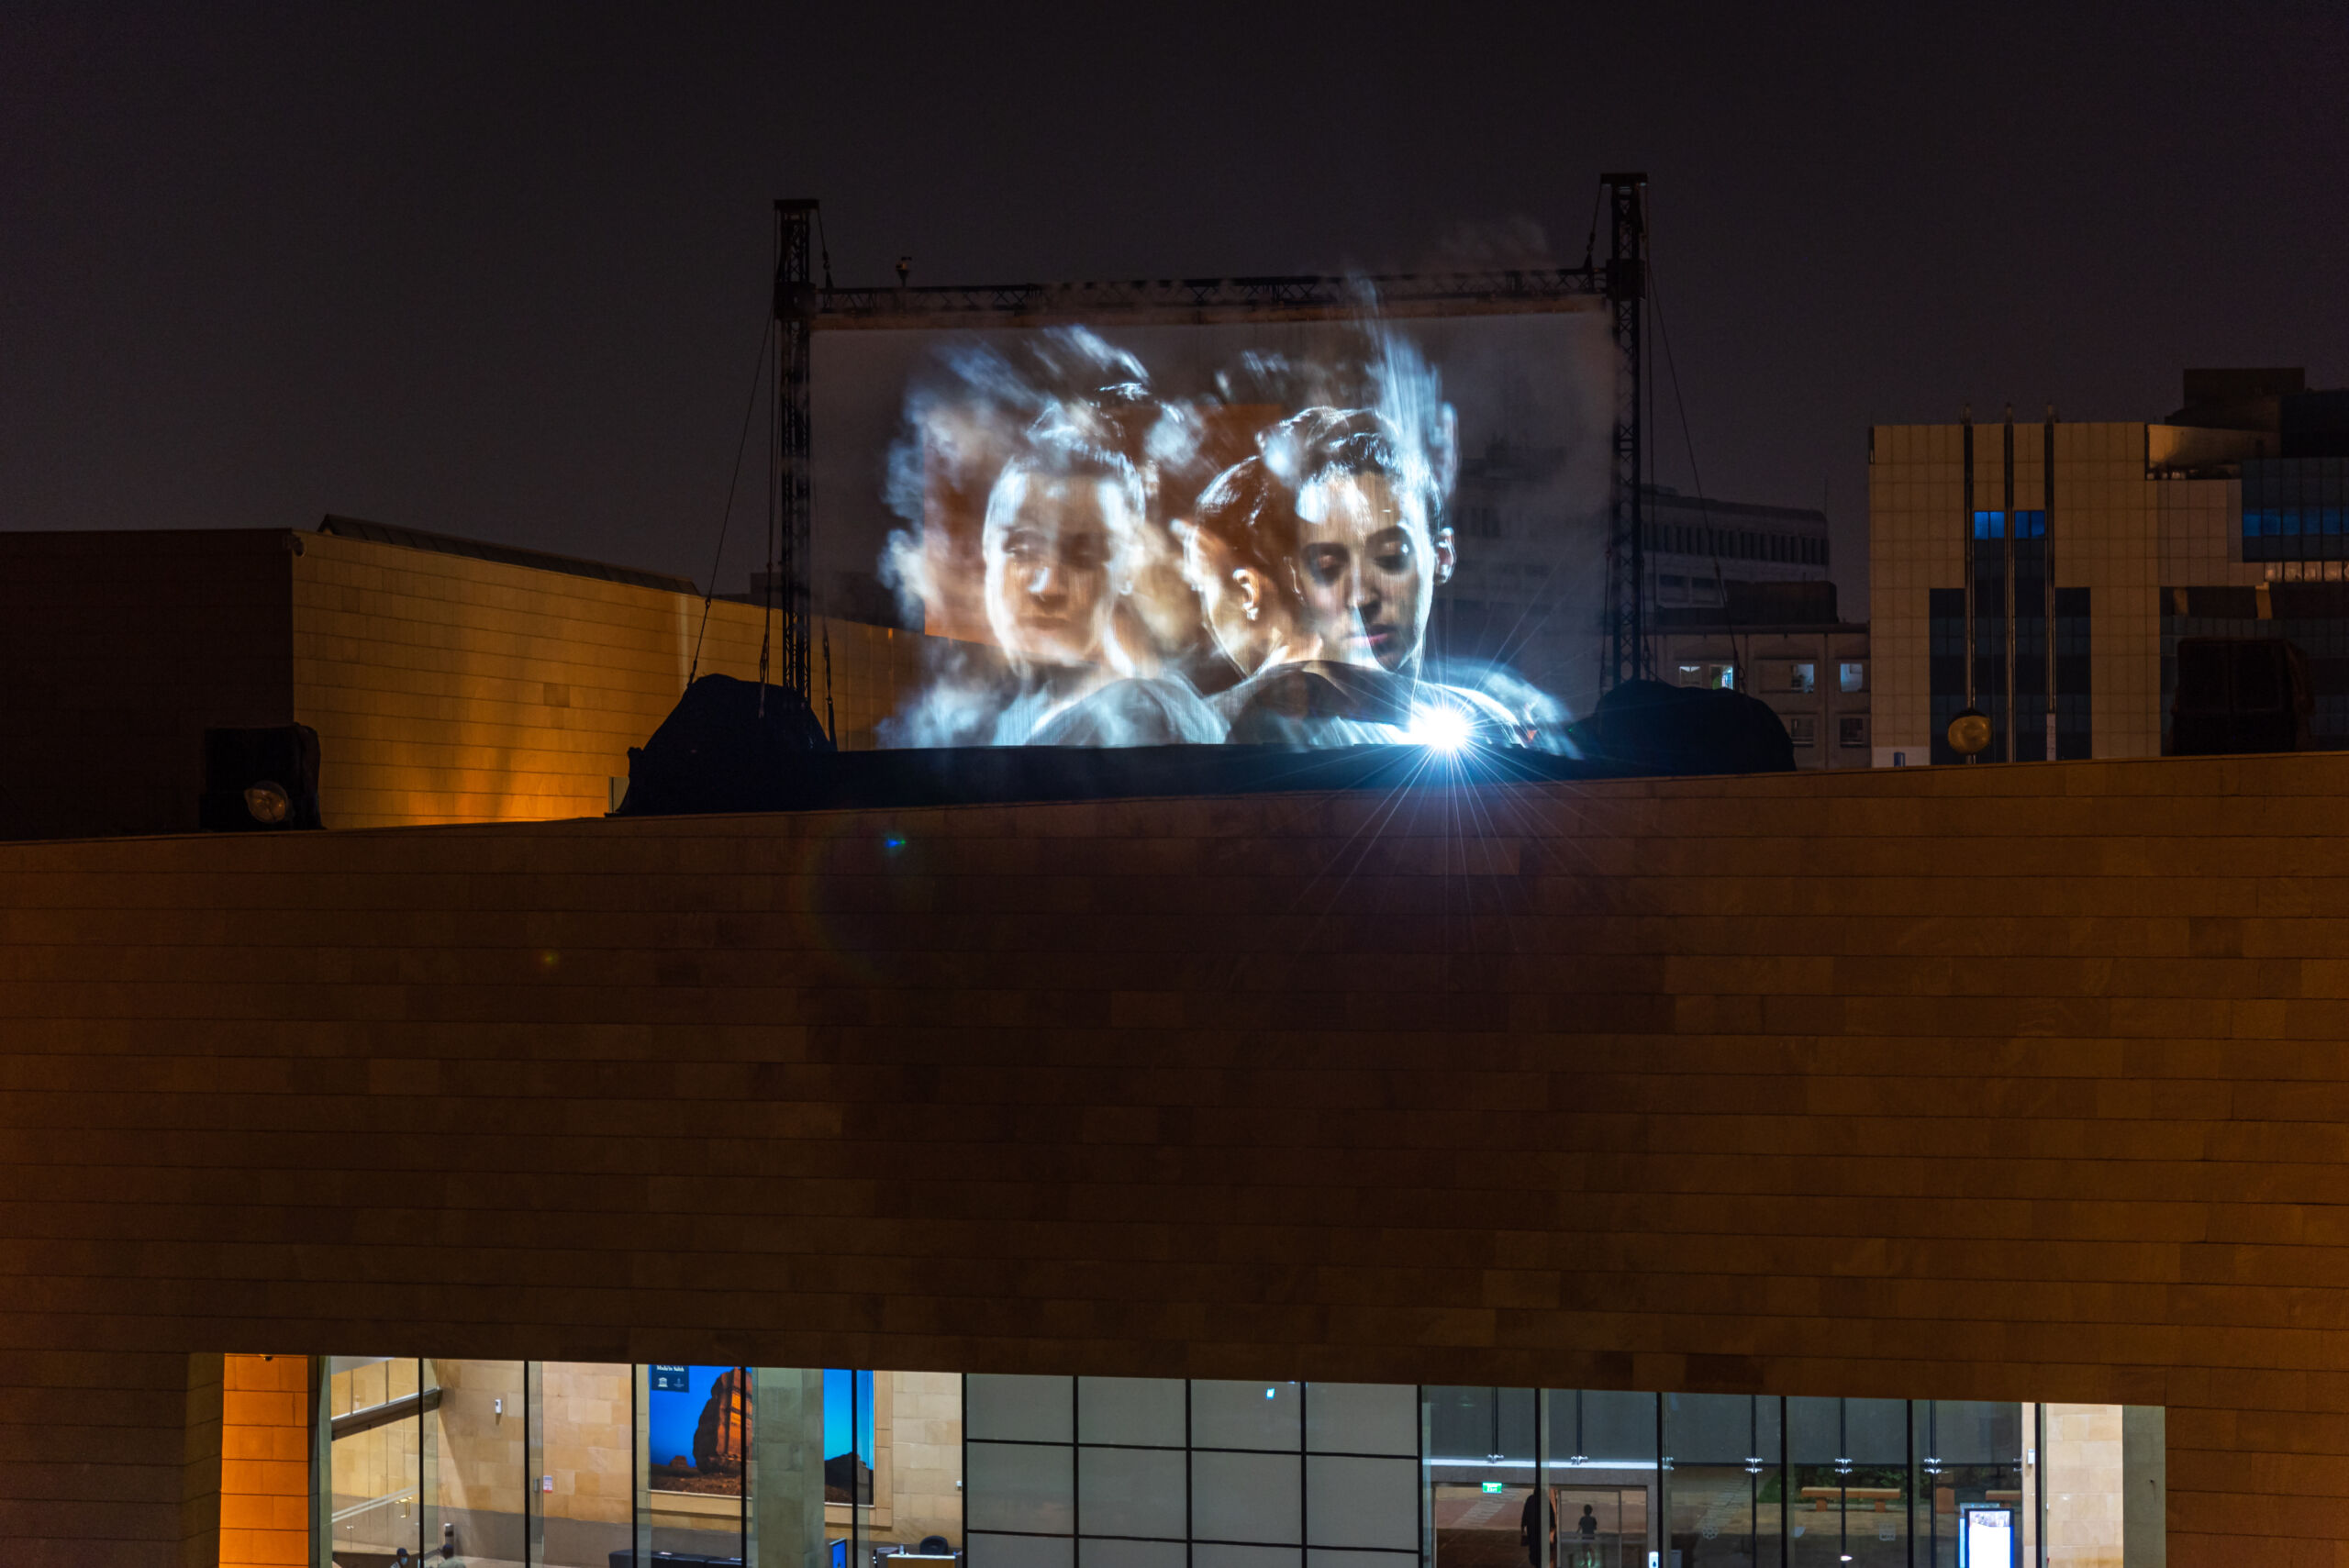 figures projected onto a building facade